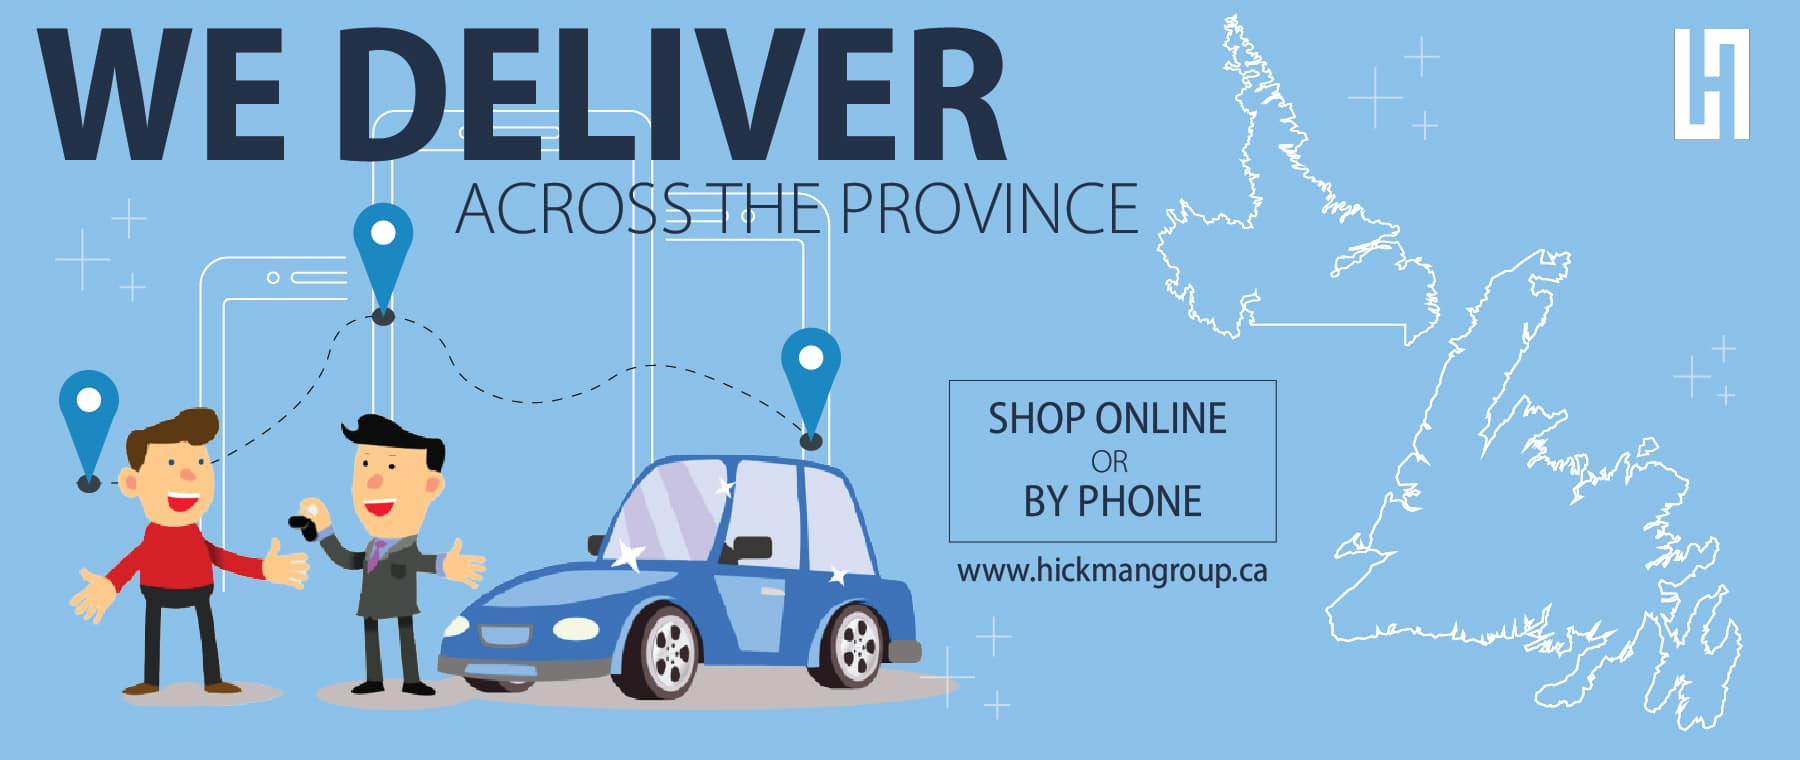 We Deliver across the Province – Website Banner-01